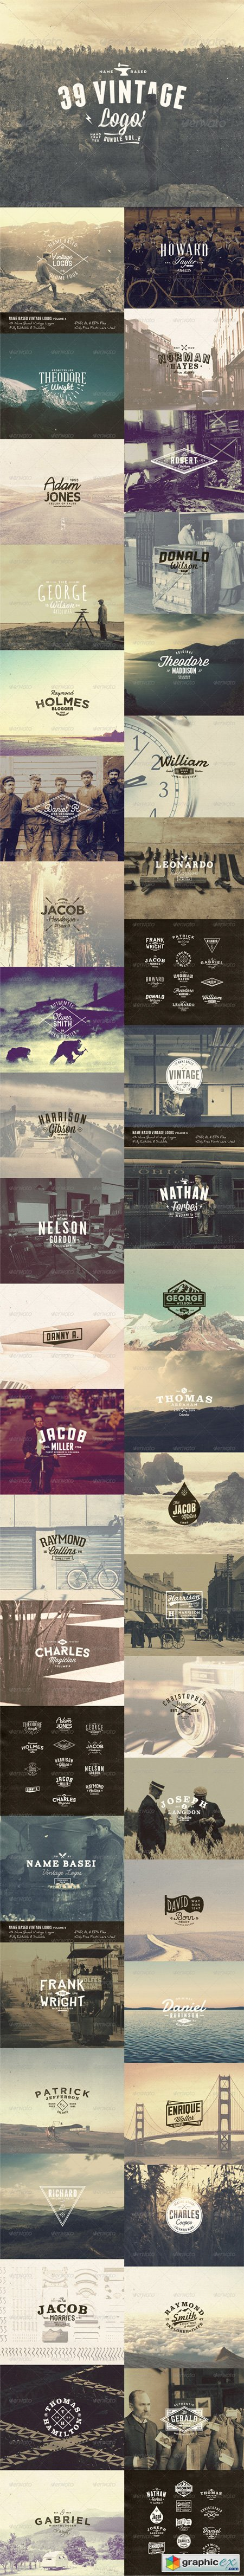 39 Name Based Vintage Logos Bundle Volume 2 8241390